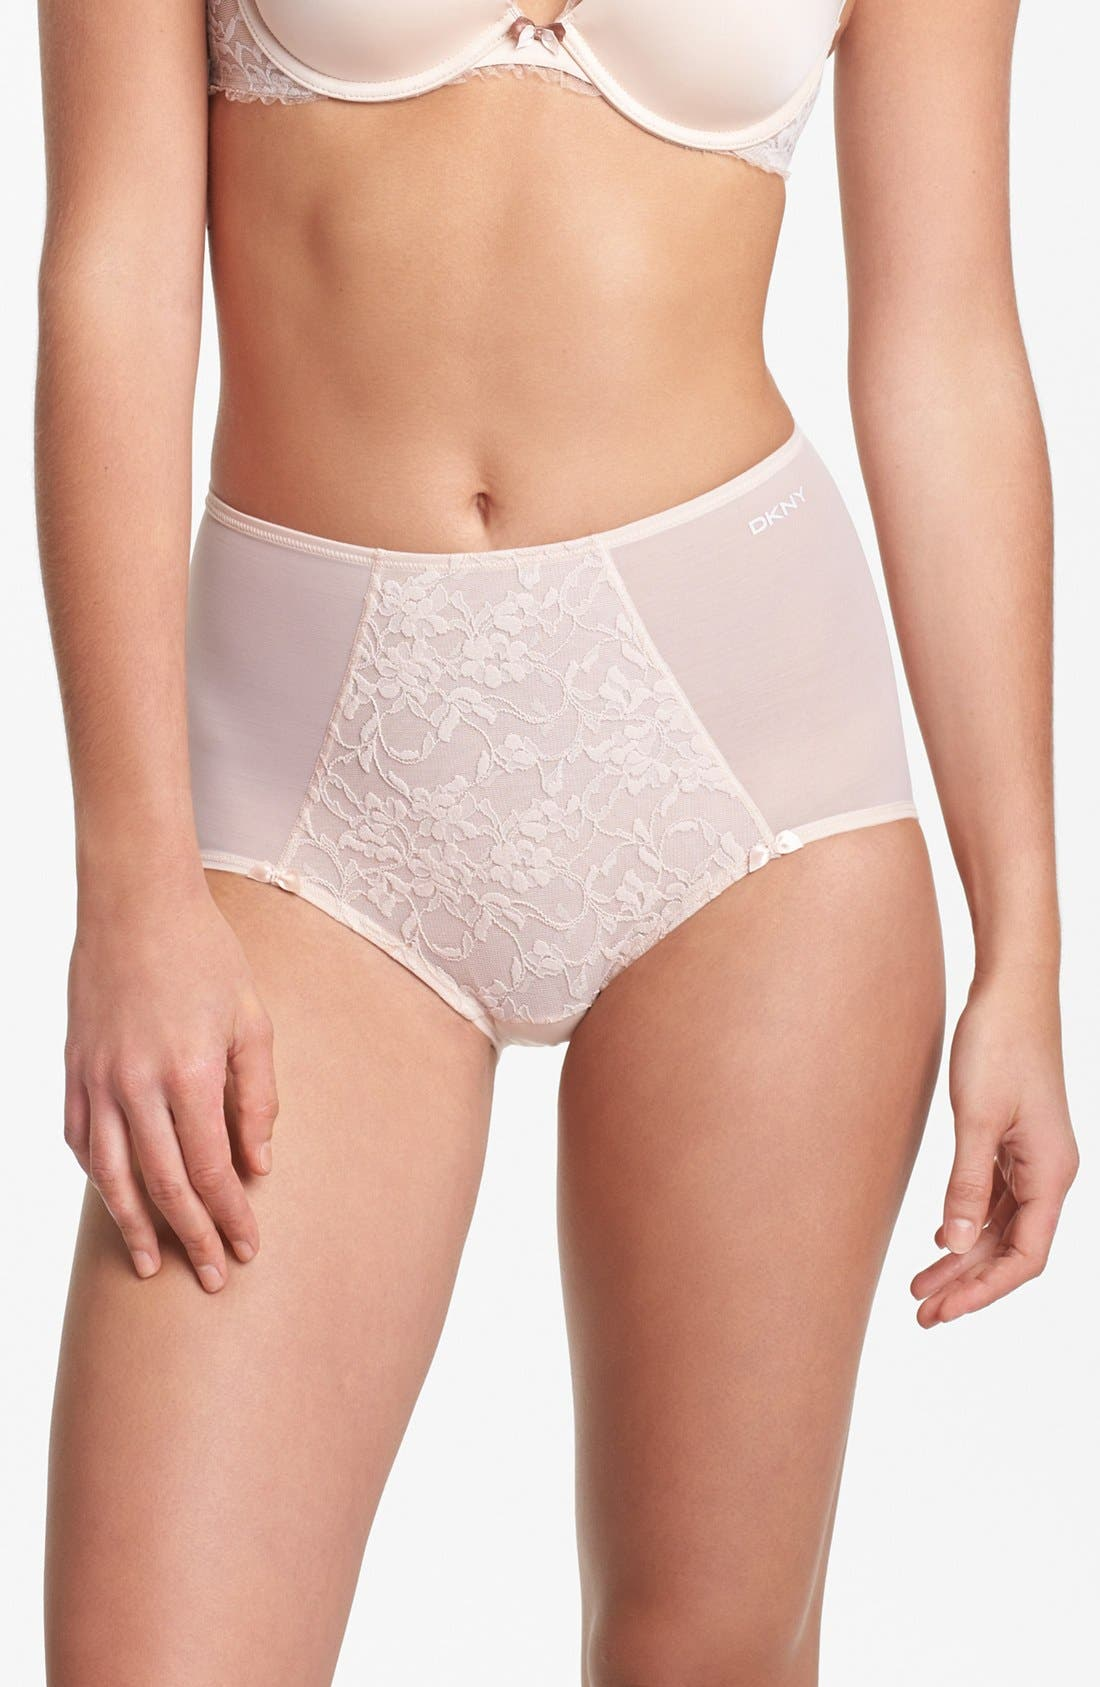 Alternate Image 1 Selected - DKNY 'Underslimmers Signature Lace' Shaping Briefs (Online Only)